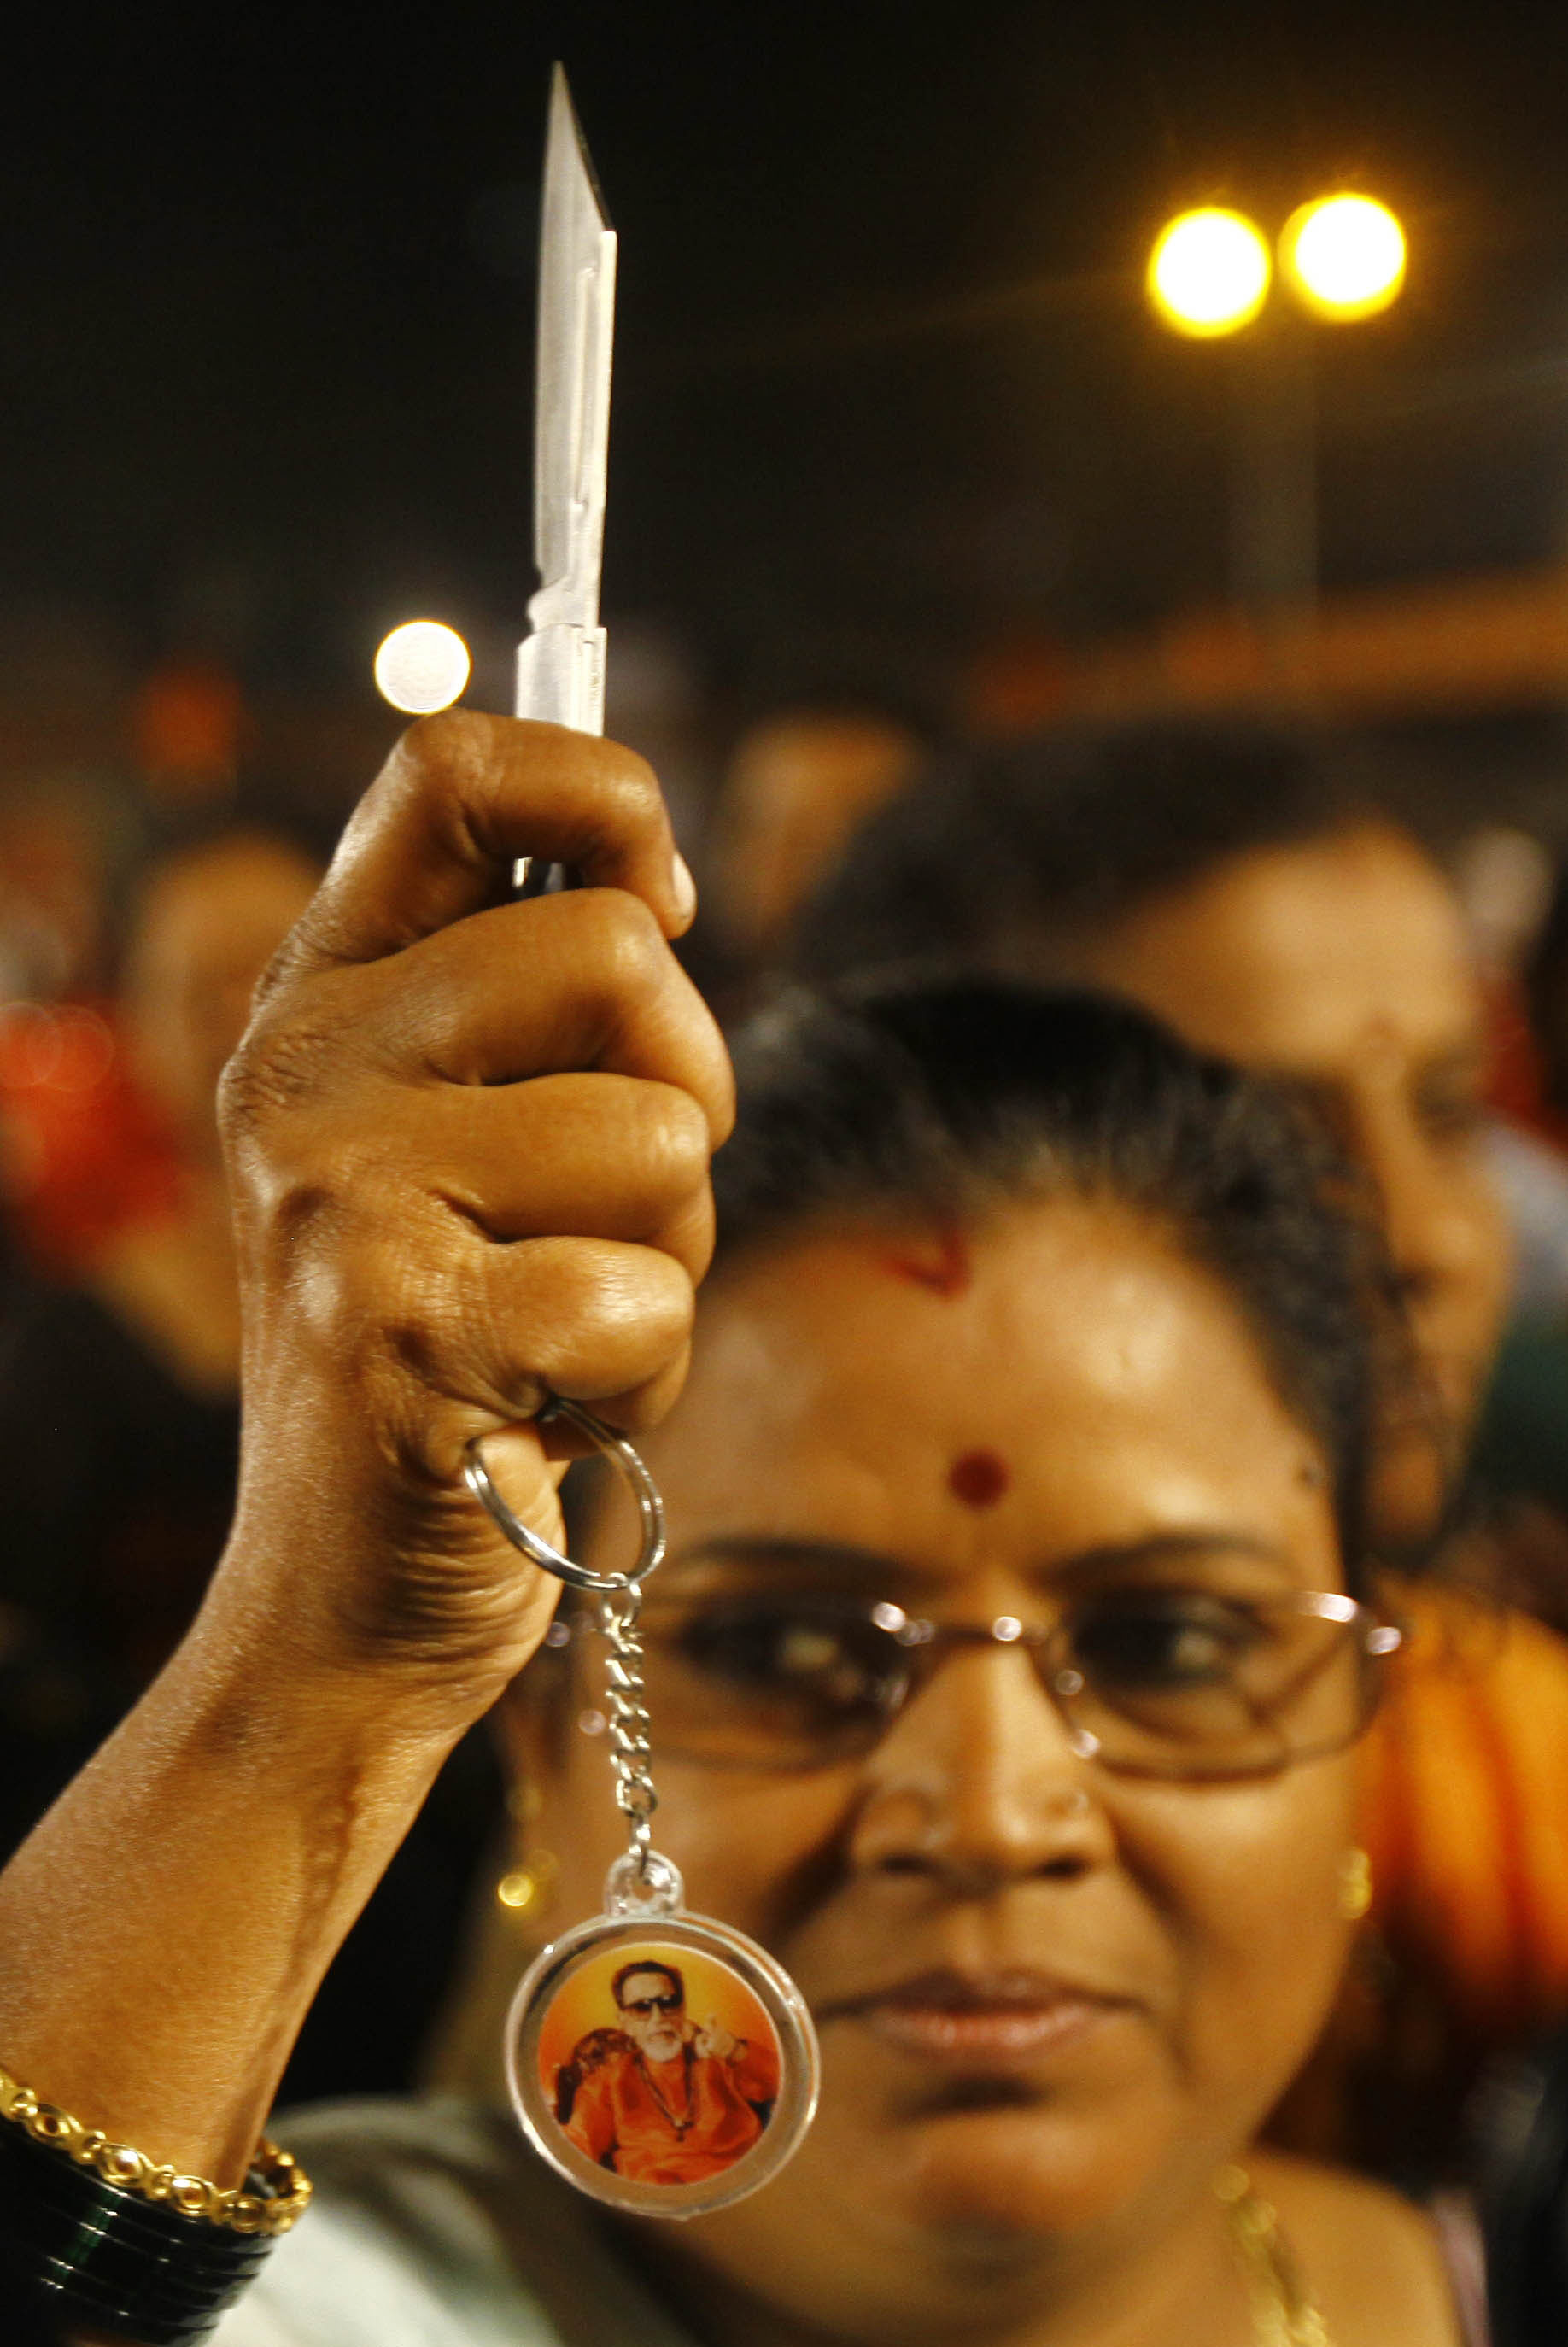 Knife fight: A woman holds up a knife she received after they were distributed by Shiv Sena party leaders in Mumbai on Wednesday. Local news reports said party leaders distributed the knives to women for self-defense during an event to mark the birthday of party founder Bal Thackeray, who died last year. | AP